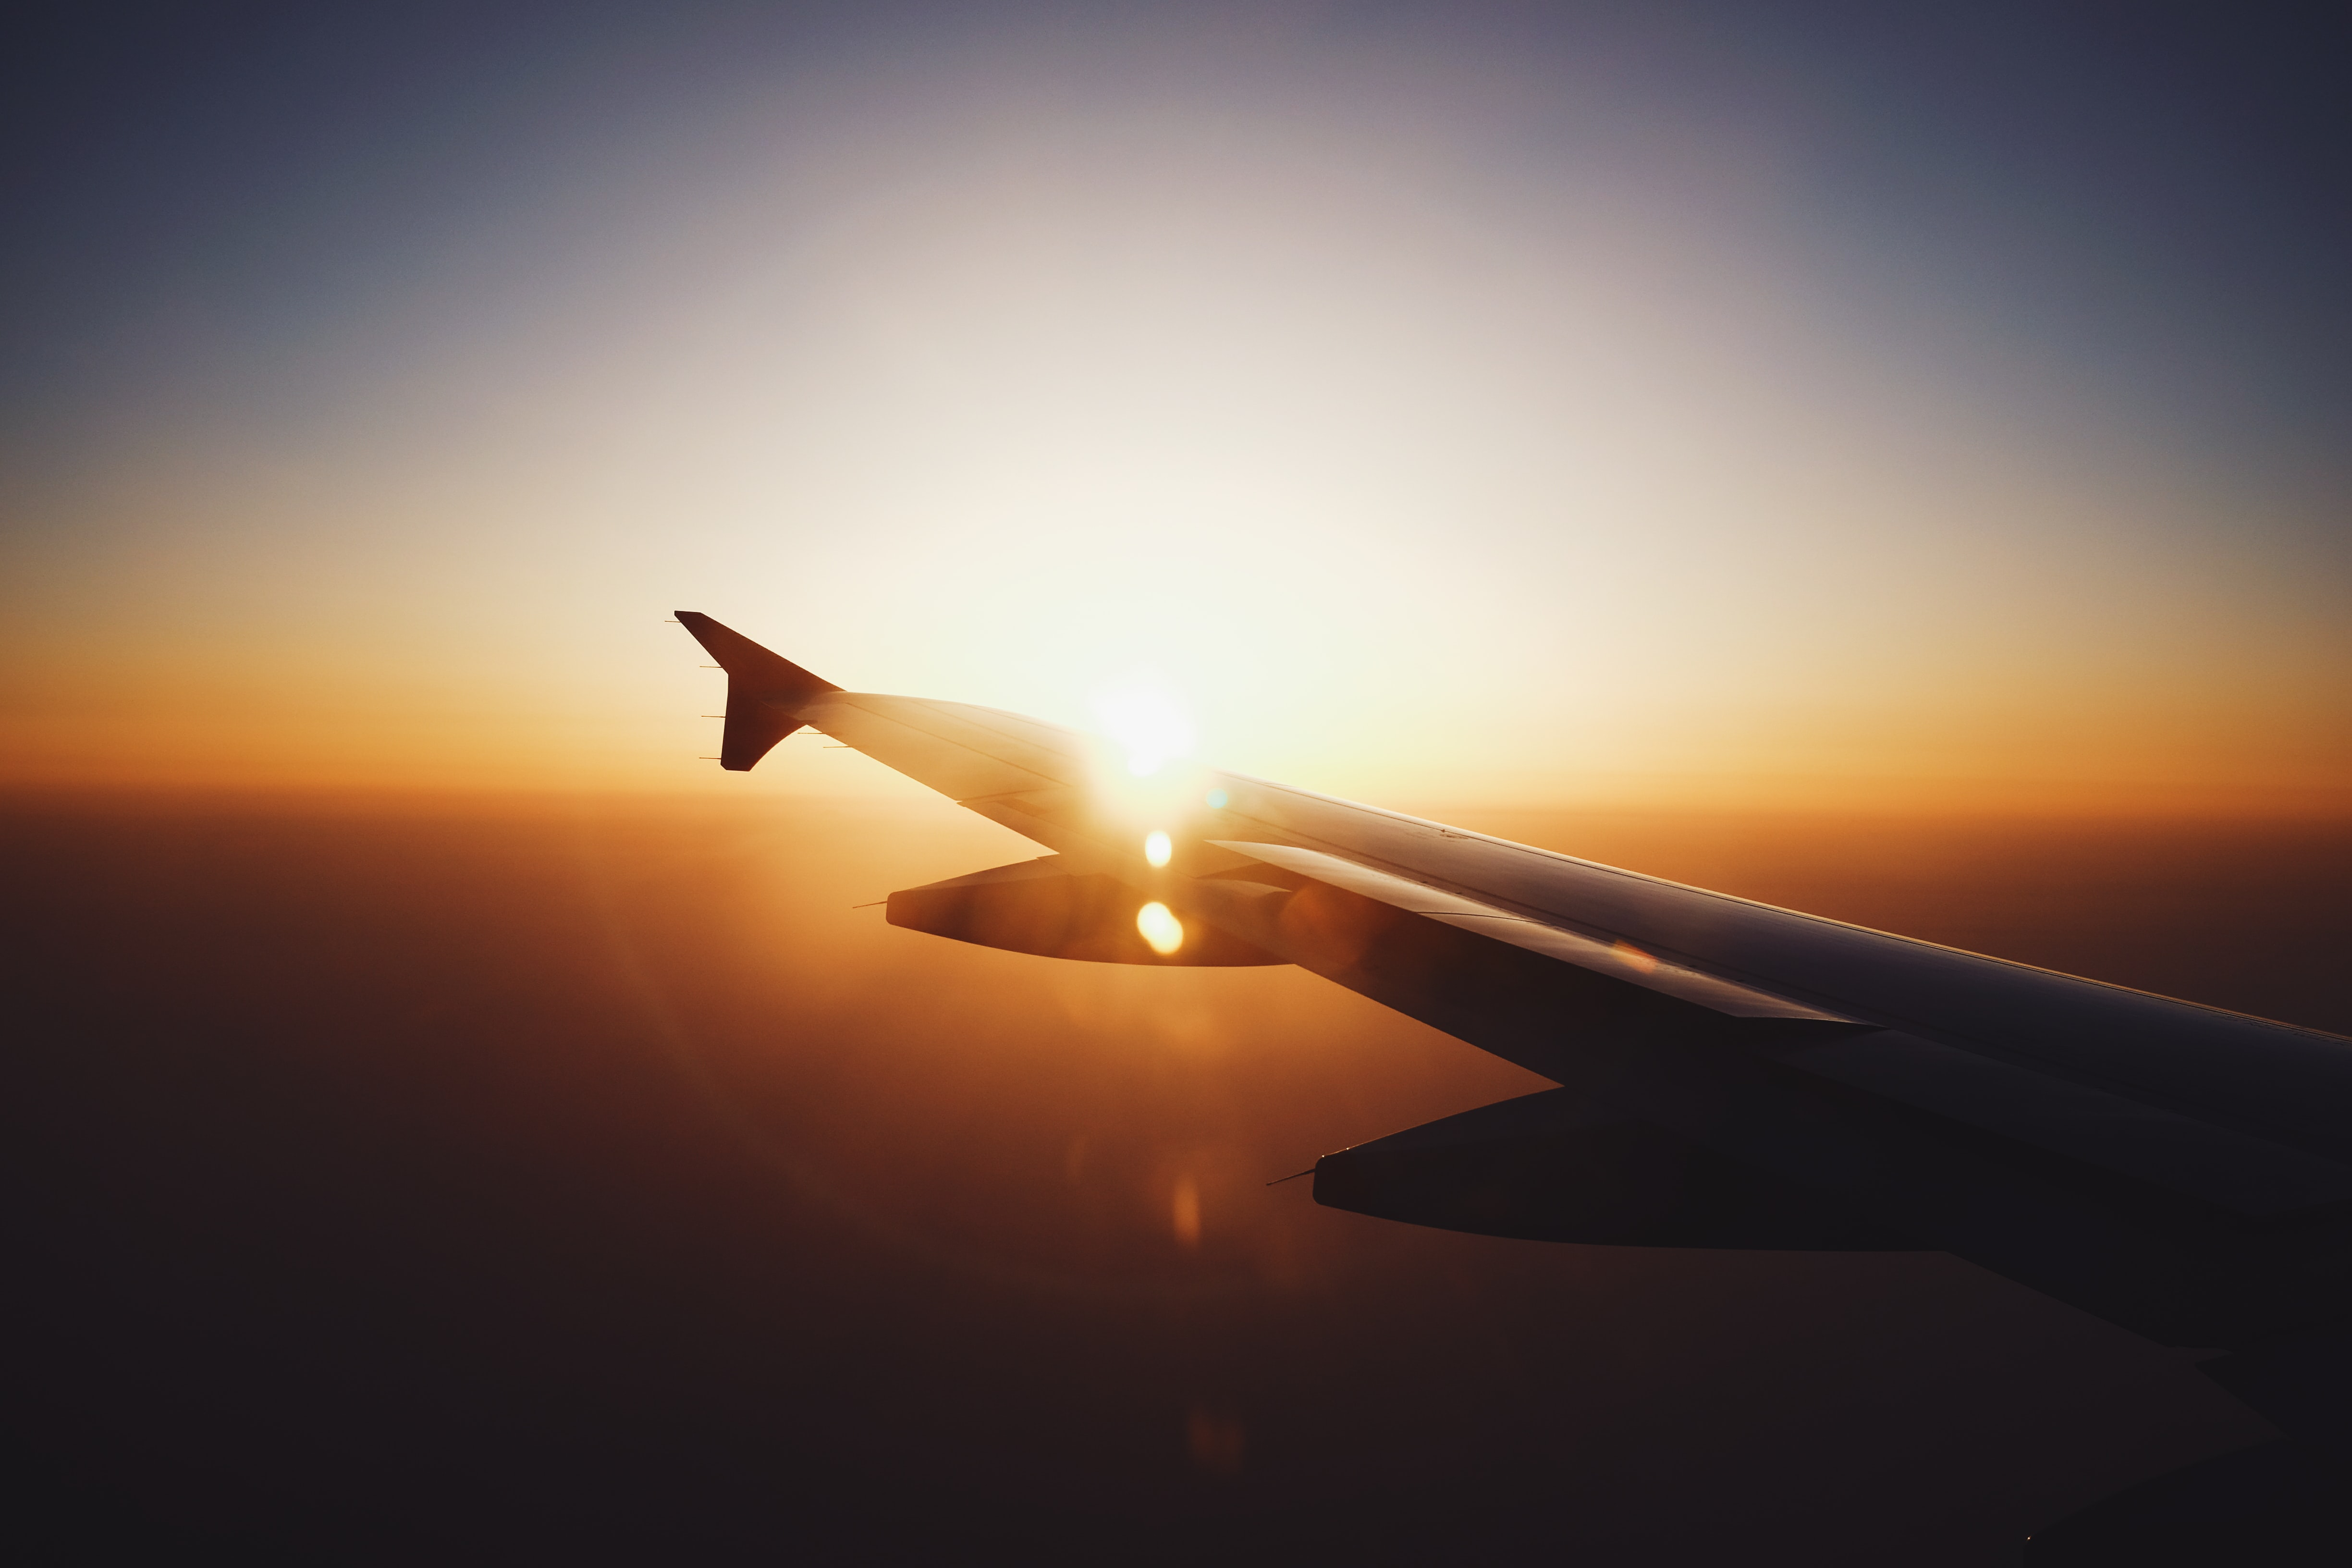 Silhouette of an airplane wing in flight, against the sun setting, with lens flare and vignette effects